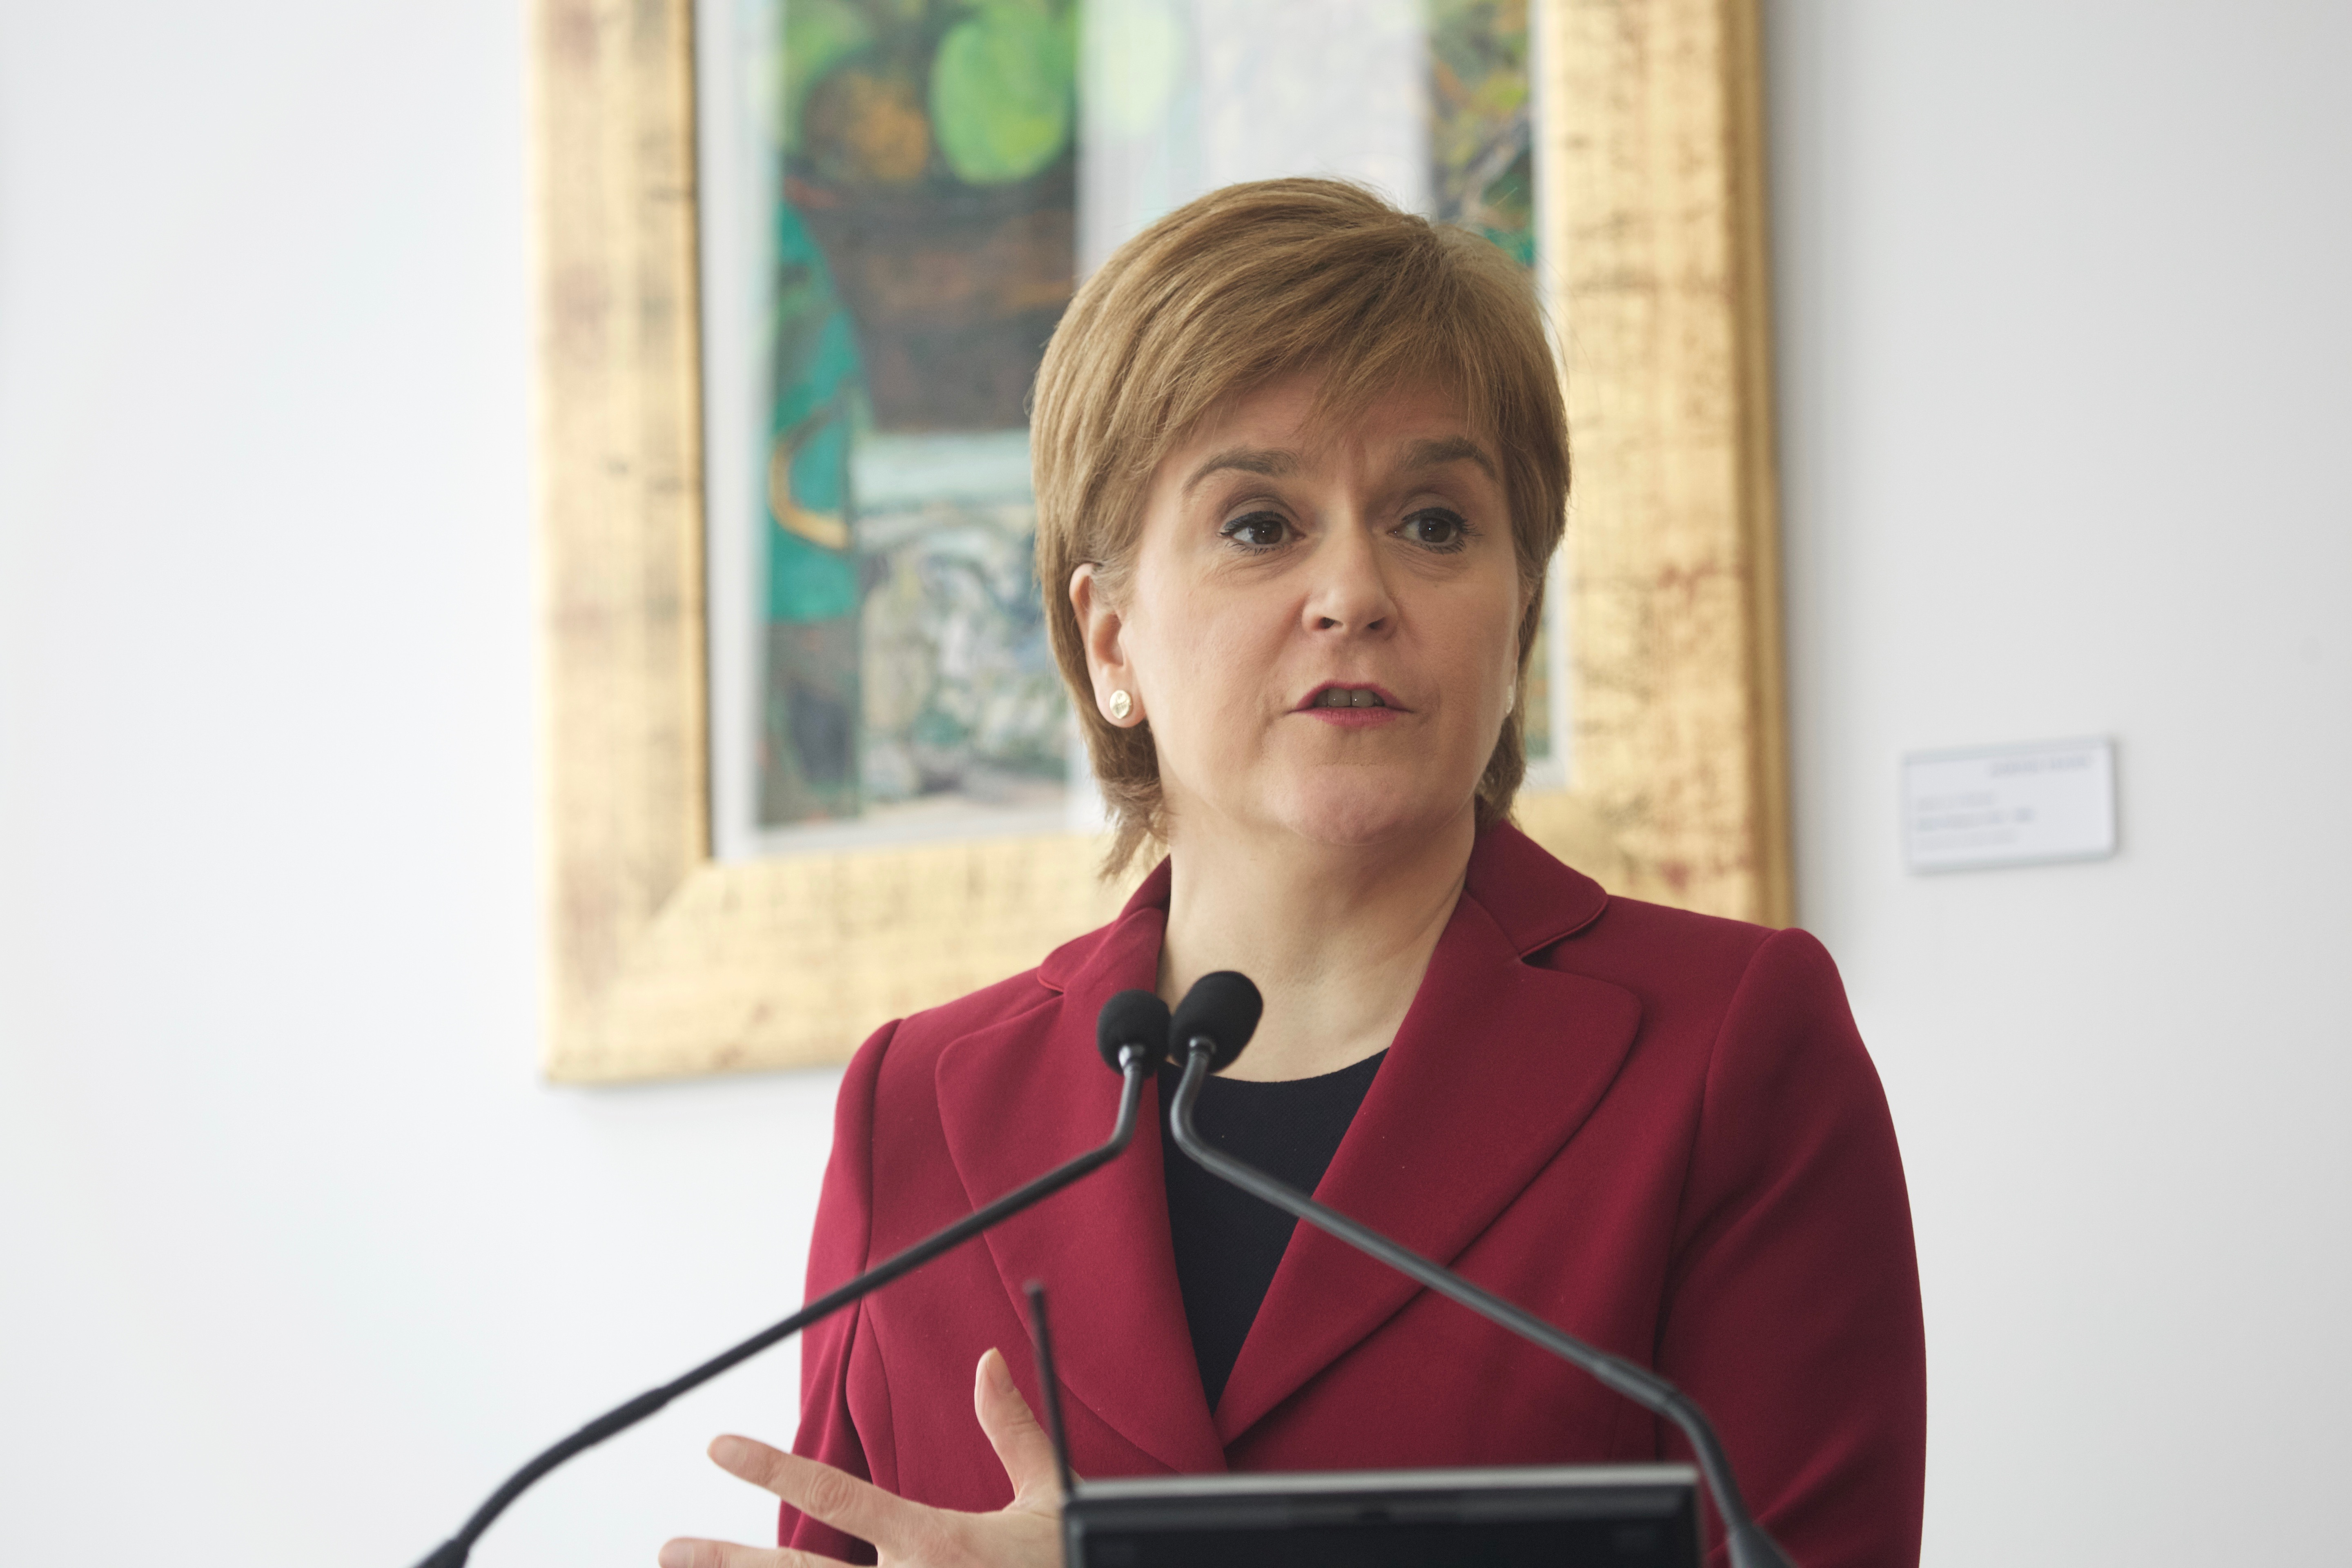 "The Scottish Government is teaming up with the CBI to boost Scotland's exports, the First Minister has announced. CBI Scotland will mobilise its membership to help deliver 300 business peer-to-peer mentorships over the next three years to increase awareness of the benefit of exporting and help ramp-up overseas activity. These measures are part of a package backed by £20 million investment announced as part of the Programme for Government, unveiled this week by the First Minister, and come as the latest statistics show Scottish exports of goods increased 7% to £28.8 billion over the past year to June 2018 – the fastest rate of growth of any country in the UK. CBI Scotland and the Scottish Government will also host a major business conference on exporting at the end of November to encourage companies to enter international markets. Speaking at the CBI Scotland annual dinner, First Minister Nicola Sturgeon said: ""Over the past year, our goods exports increased by 7% – the fastest rate of growth of any country in the UK. We are determined to work with business and business organisations to unlock more opportunities to increase exports. ""CBI Scotland is an important voice for businesses across the country, and an important critical friend and partner to the Scottish Government – so its help is vital. ""Together with our other partner organisations, we will work with CBI, whose membership includes some of Scotland's most successful exporters, to play a key role in identifying export champions to work with our ambitious small and medium enterprises who are at the start of their export journey. ""We hope to create 100 new business to business mentorships each year - helping new exporters learn from experienced ones."" Tracy Black, CBI Scotland director said: ""By making this commitment to help those who already export but want to do more, we're sending a clear signal about reviving Scotland's historic reputation for global trade and staking our claim in the global economy. ""In last year's Pursuing Prosperity report, we identified improving exporting as one of the key drivers for boosting productivity across Scotland. Business can't achieve that alone – we need real partnership with government to achieve our ambitions and today's announcement marks an important first step in that journey."" Welcoming the increase in exports, Cabinet Secretary for Finance, Economy and Fair Work Derek Mackay said: ""Today's figures are again positive for Scotland, clearly showing strong export growth across a range of areas. ""The value of Scotland's annual goods exports increased by 7% (£1.9 billion) to £28.8 billion. This was a higher growth rate than the overall UK figure of 5% and the highest percentage increase of any UK country. ""This increase in Scottish goods exports was driven by increased exports of goods to the EU, up 18% (£2.3 billion) to £14.9 billion, and more specifically exports of oil and gas, up 29% (£1.6 billion) from £5.4 billion to £7.0 billion. Total UK exports to the EU increased by 7%. ""The Scottish Government continues to do everything in our power to support the Scottish economy and grow exports further, in spite of the uncertainty caused by Brexit. An Export Growth Plan will see £20 million invested in a range of measures, including support for 150 businesses to increase overseas activity."""